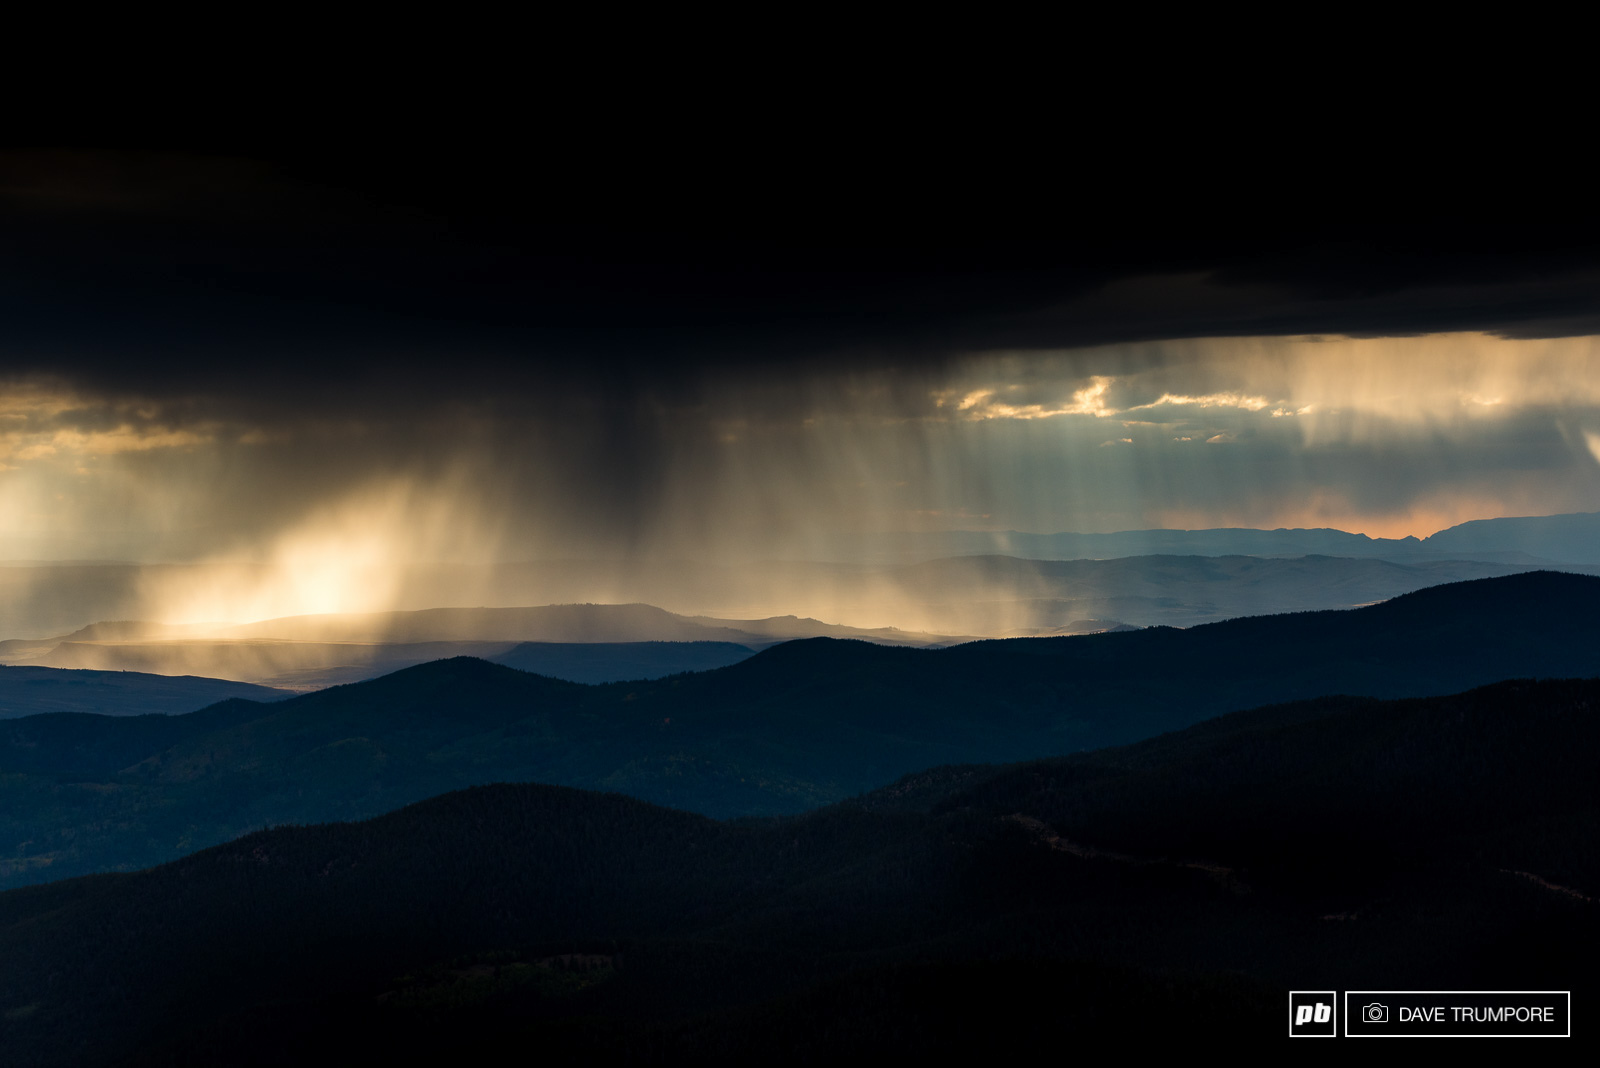 At 12 000 feet you can feel and smell thunderstorms as they roll in even when they are still far off in the distance. While it may be spectacular to look at it is not a time to linger.